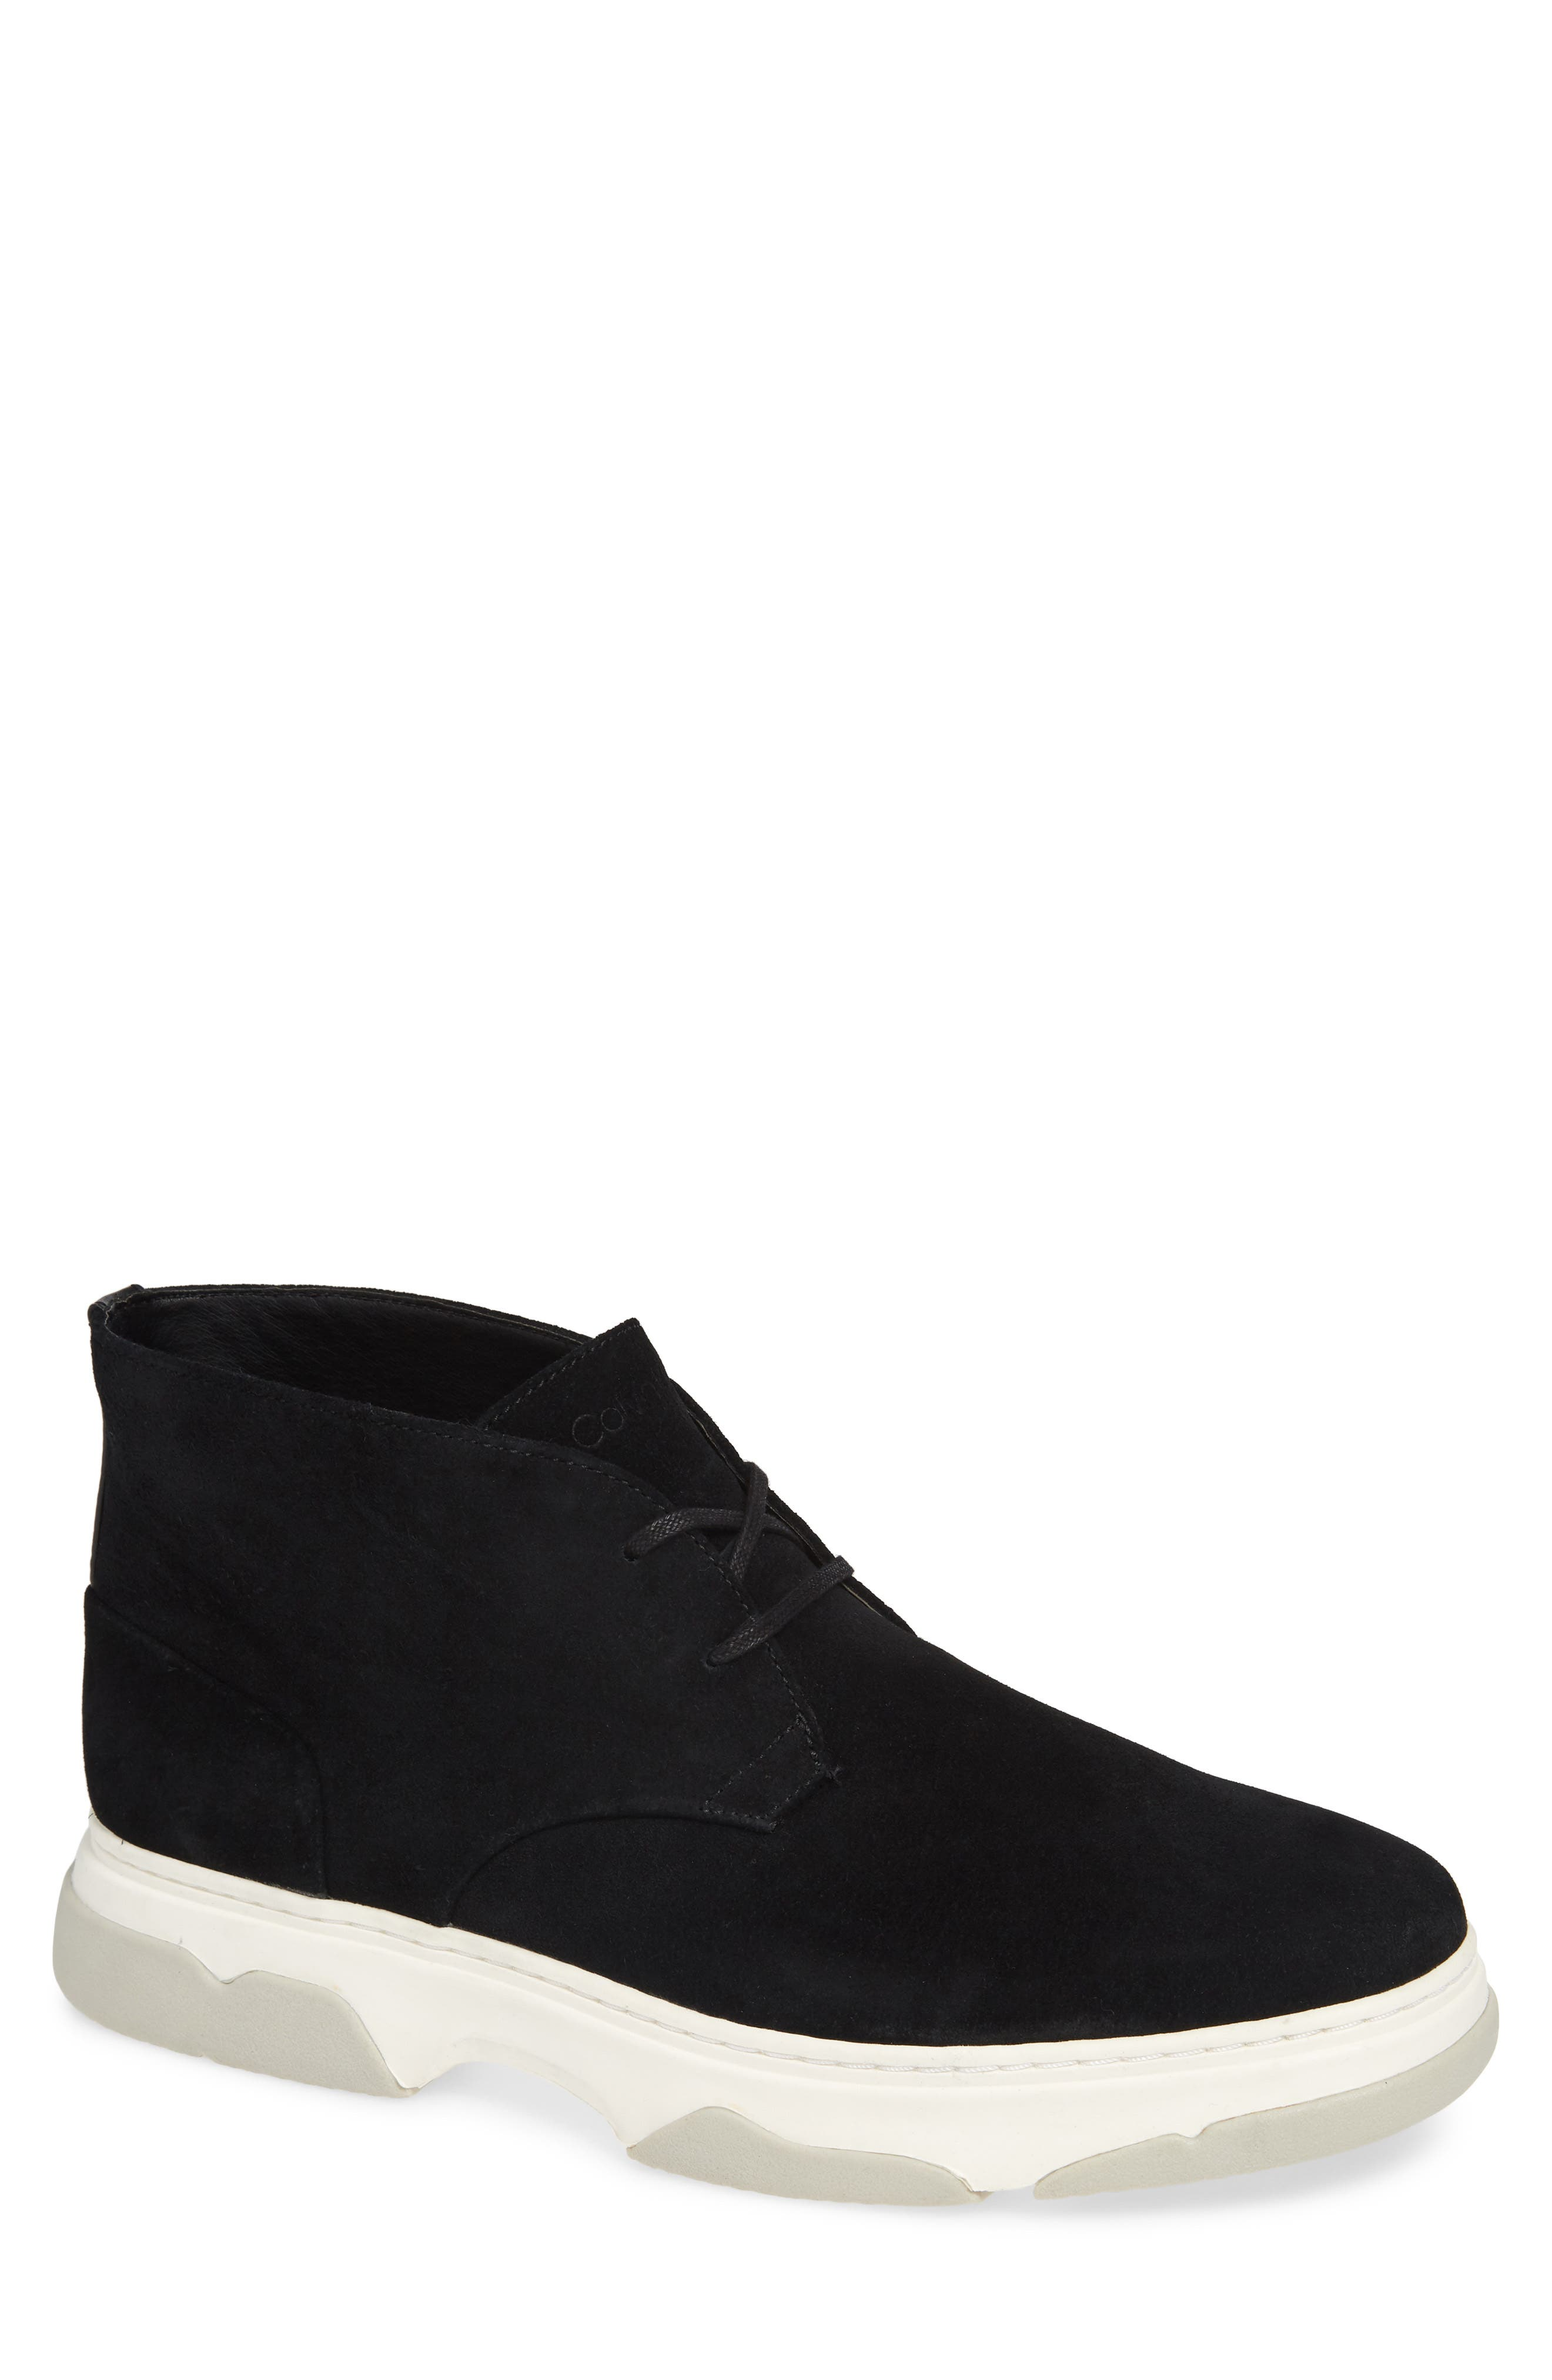 Perry Chukka Boot,                         Main,                         color, BLACK CALF SUEDE